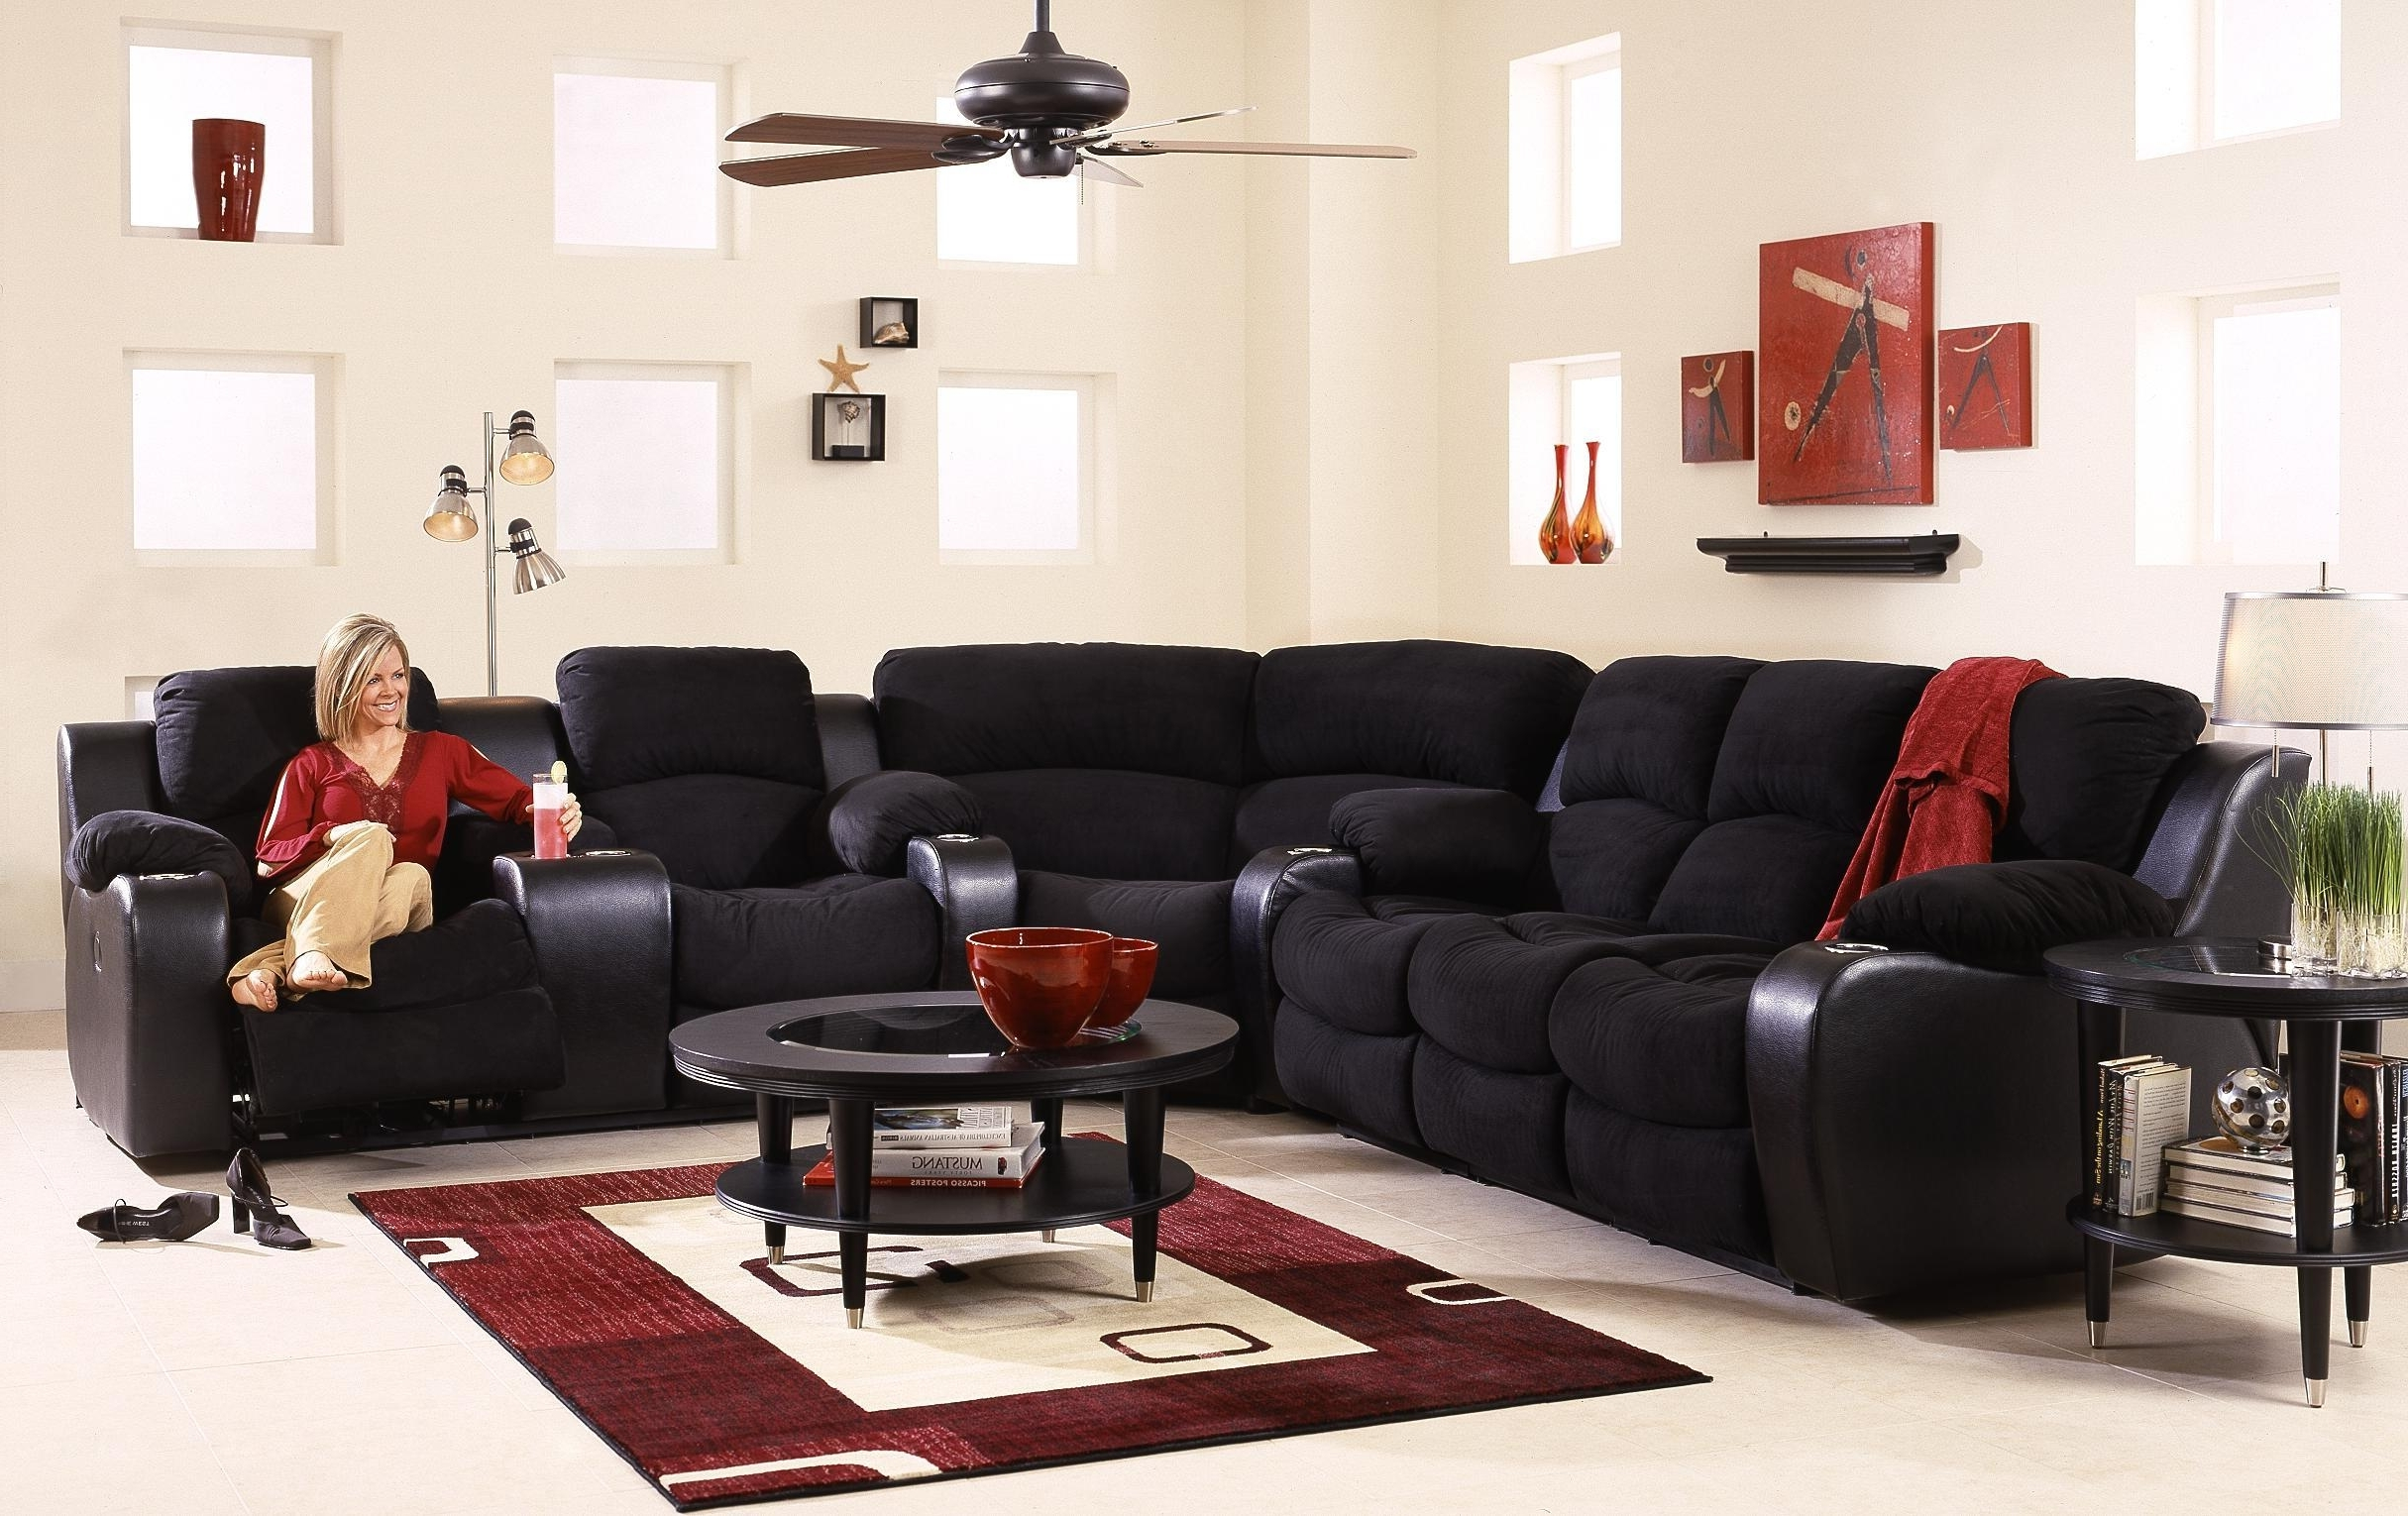 Most Popular Awesome Sectional Sofas With Cup Holders Unique – Tatsuyoru For Grand Furniture Sectional Sofas (View 12 of 15)